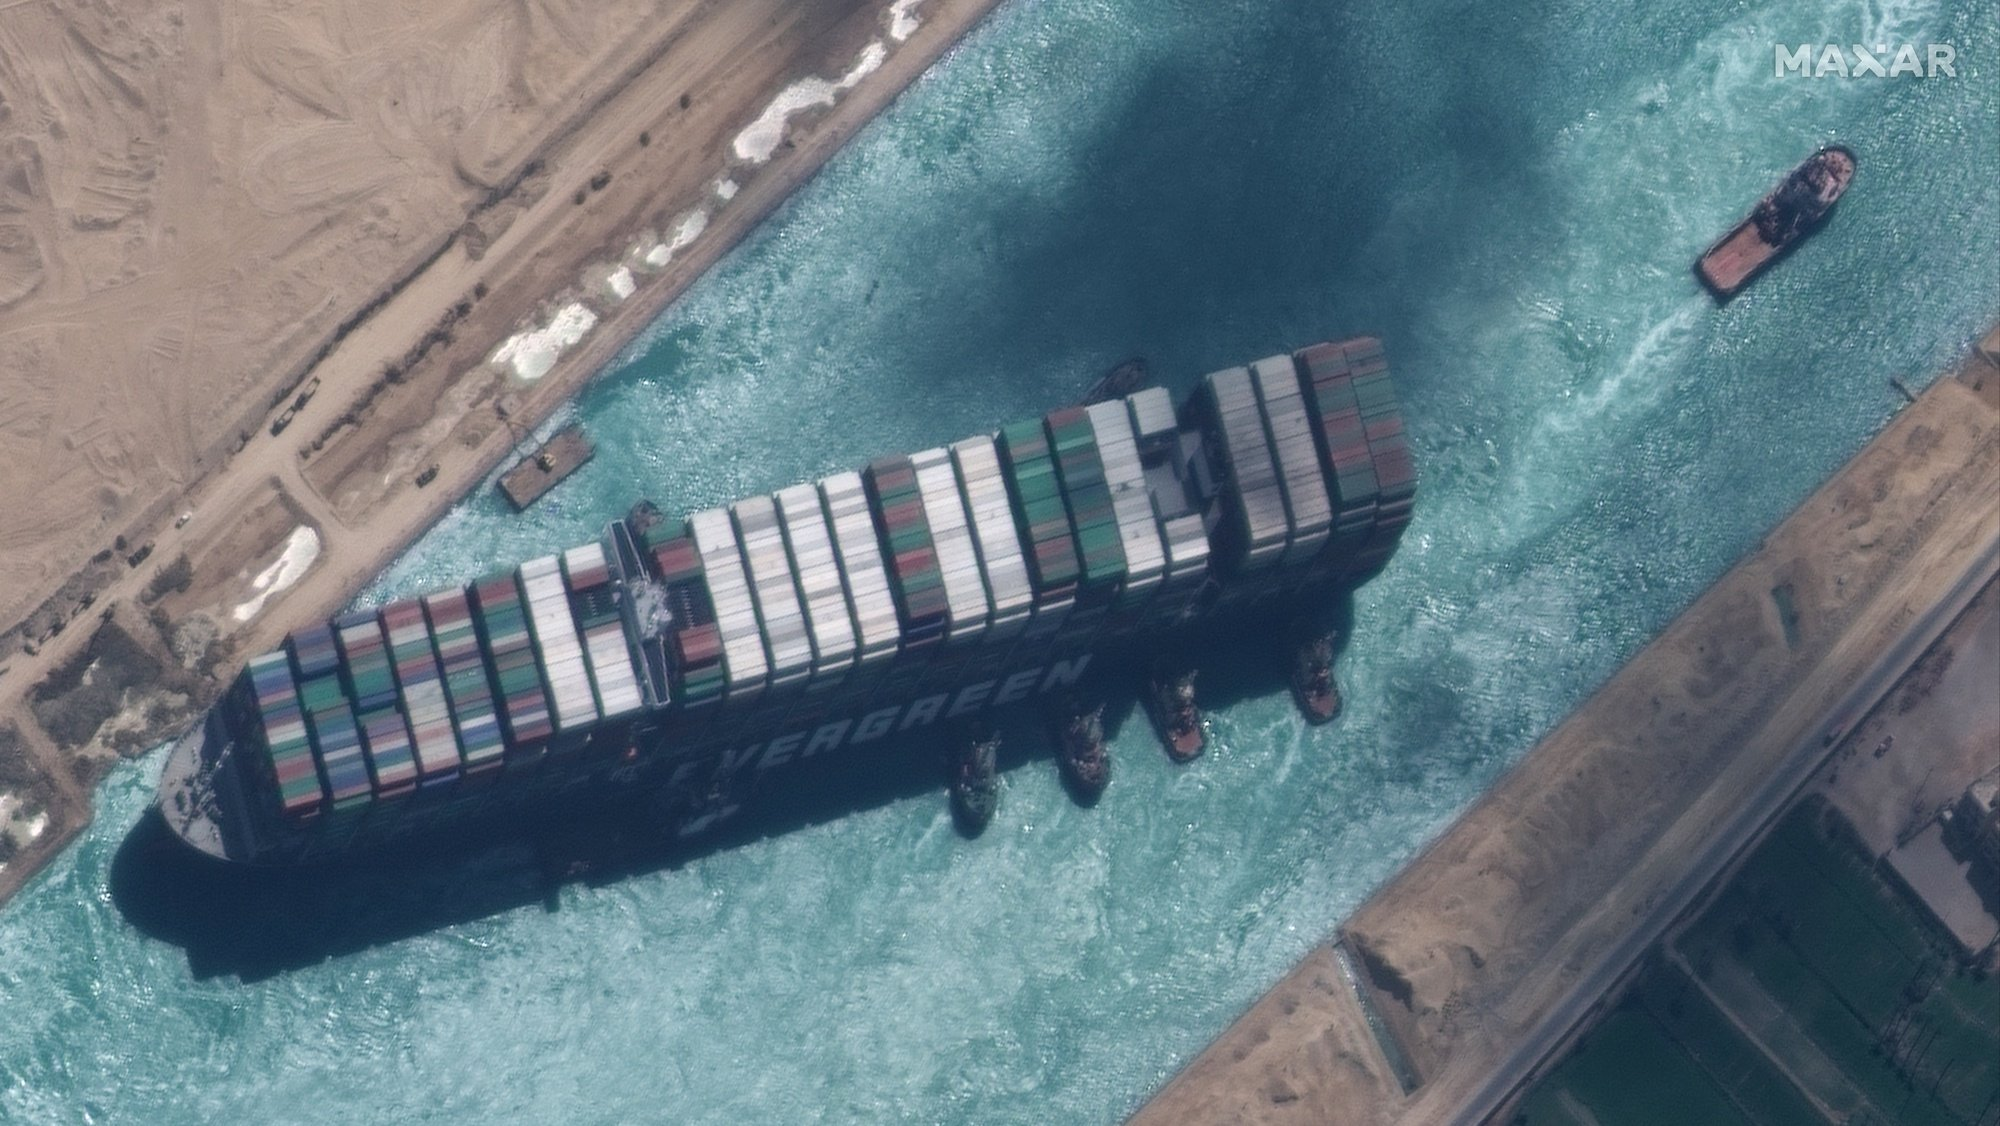 epa09105214 A handout satellite image made available by MAXAR Technologies shows , the Ever Given container ship after it has been moved away from the eastern bank of the canal and tugboats trying to reposition the ship, in the Suez Canal, Egypt, 29 March 2021. The head of the Suez Canal Authority announced on 29 March that the large container ship, which ran aground in the Suez Canal on 23 March, is now free floating after responding to the pulling maneuvers.  EPA/MAXAR TECHNOLOGIES HANDOUT MANDATORY CREDIT: SATELLITE IMAGE 2020 MAXAR TECHNOLOGIES -- the watermark may not be removed/cropped -- HANDOUT EDITORIAL USE ONLY/NO SALES HANDOUT EDITORIAL USE ONLY/NO SALES